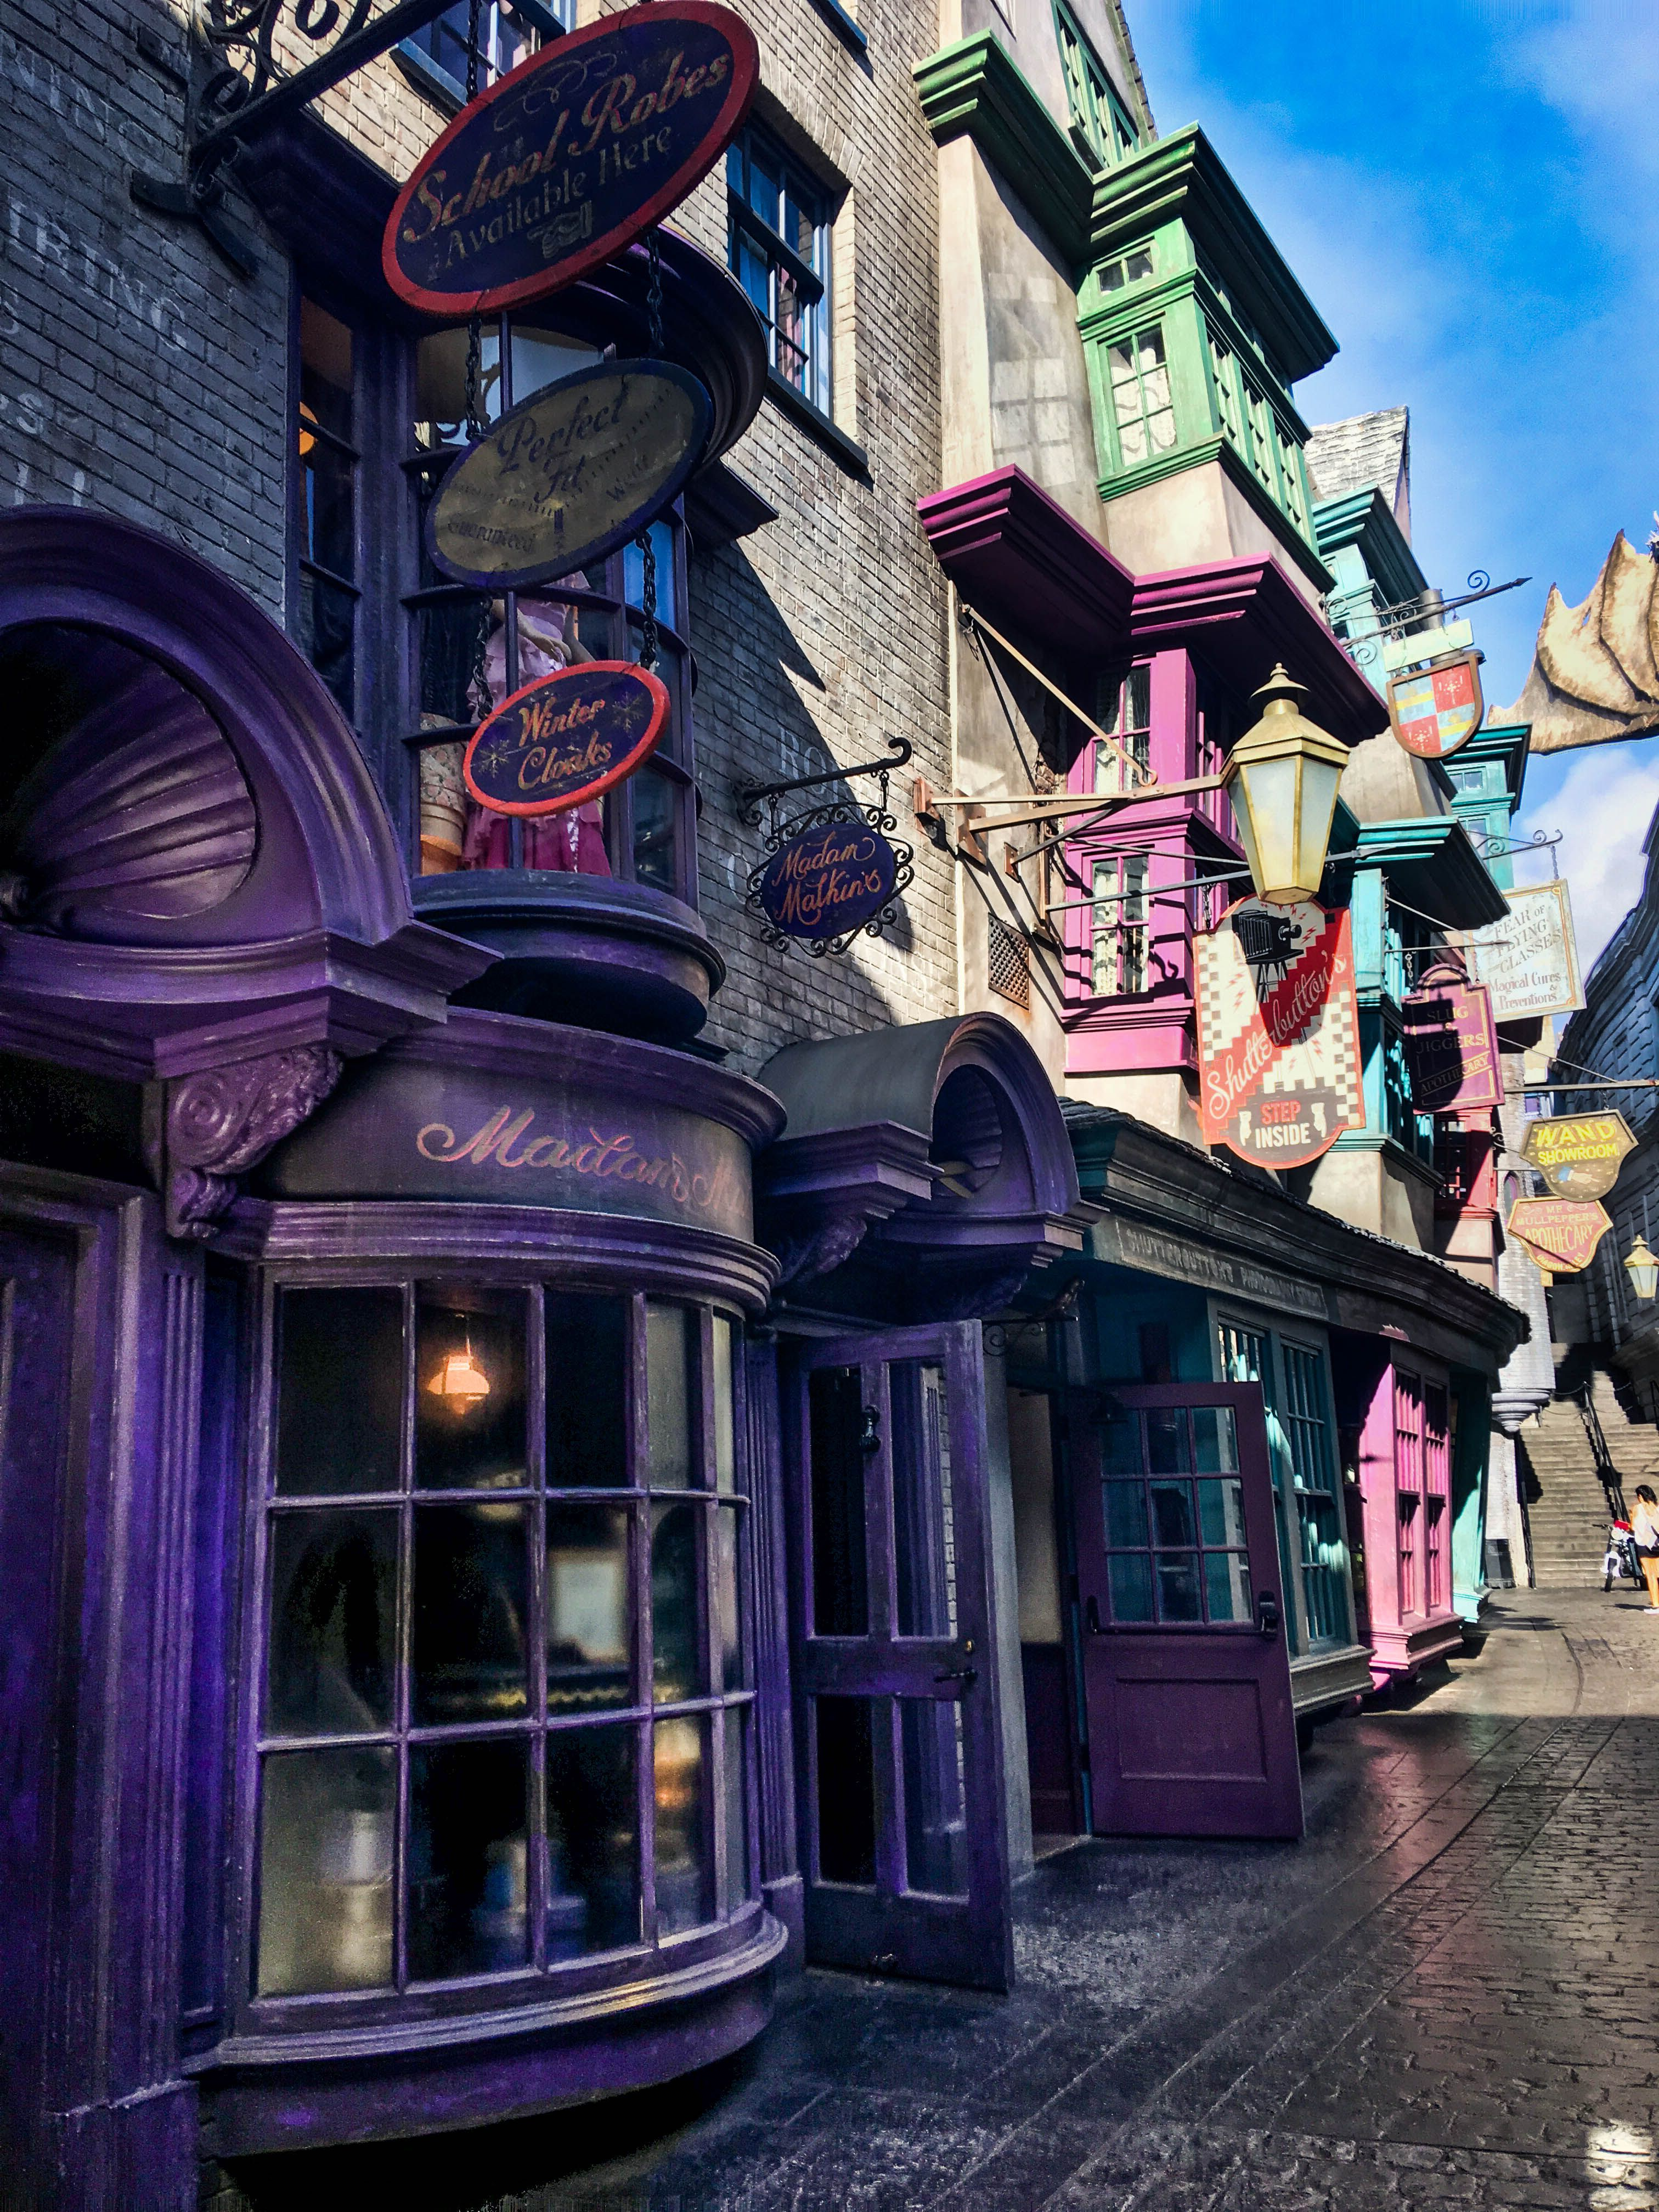 The Ultimate Guide To The Wizarding World Of Harry Potter In Universal Studios Or Harry Potter Universal Studios Universal Studios Orlando Harry Potter Orlando